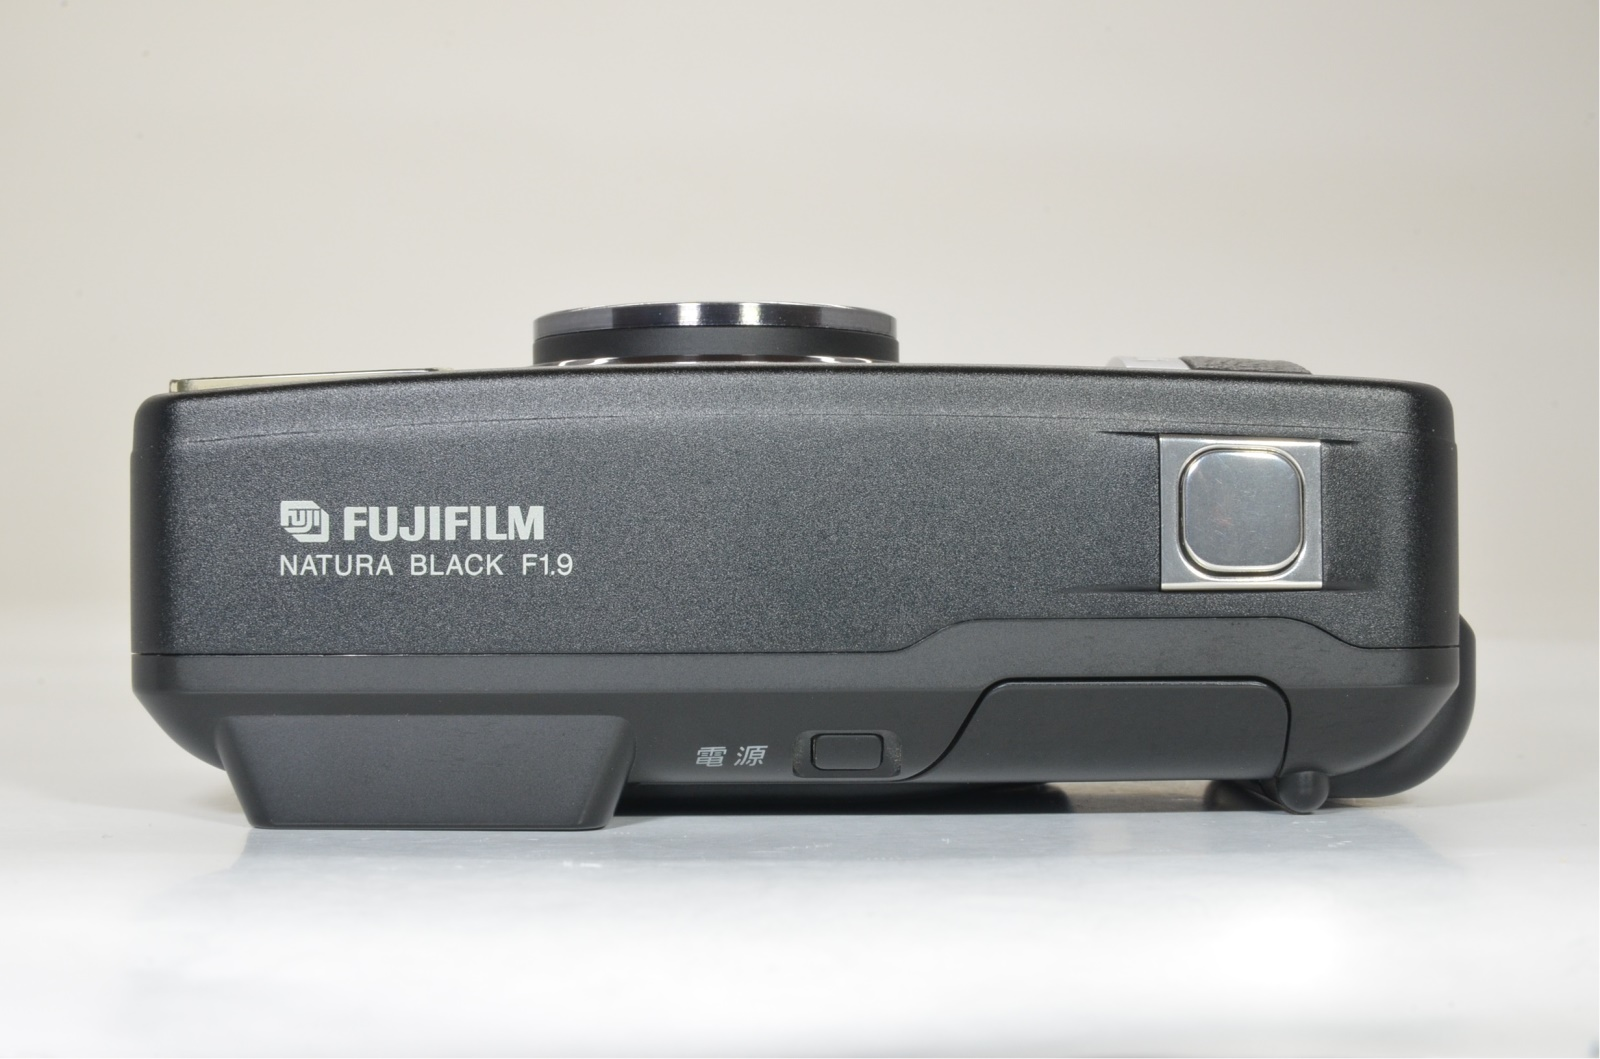 fujifilm natura black 35mm film camera fujinon 24mm f1.9 shooting tested